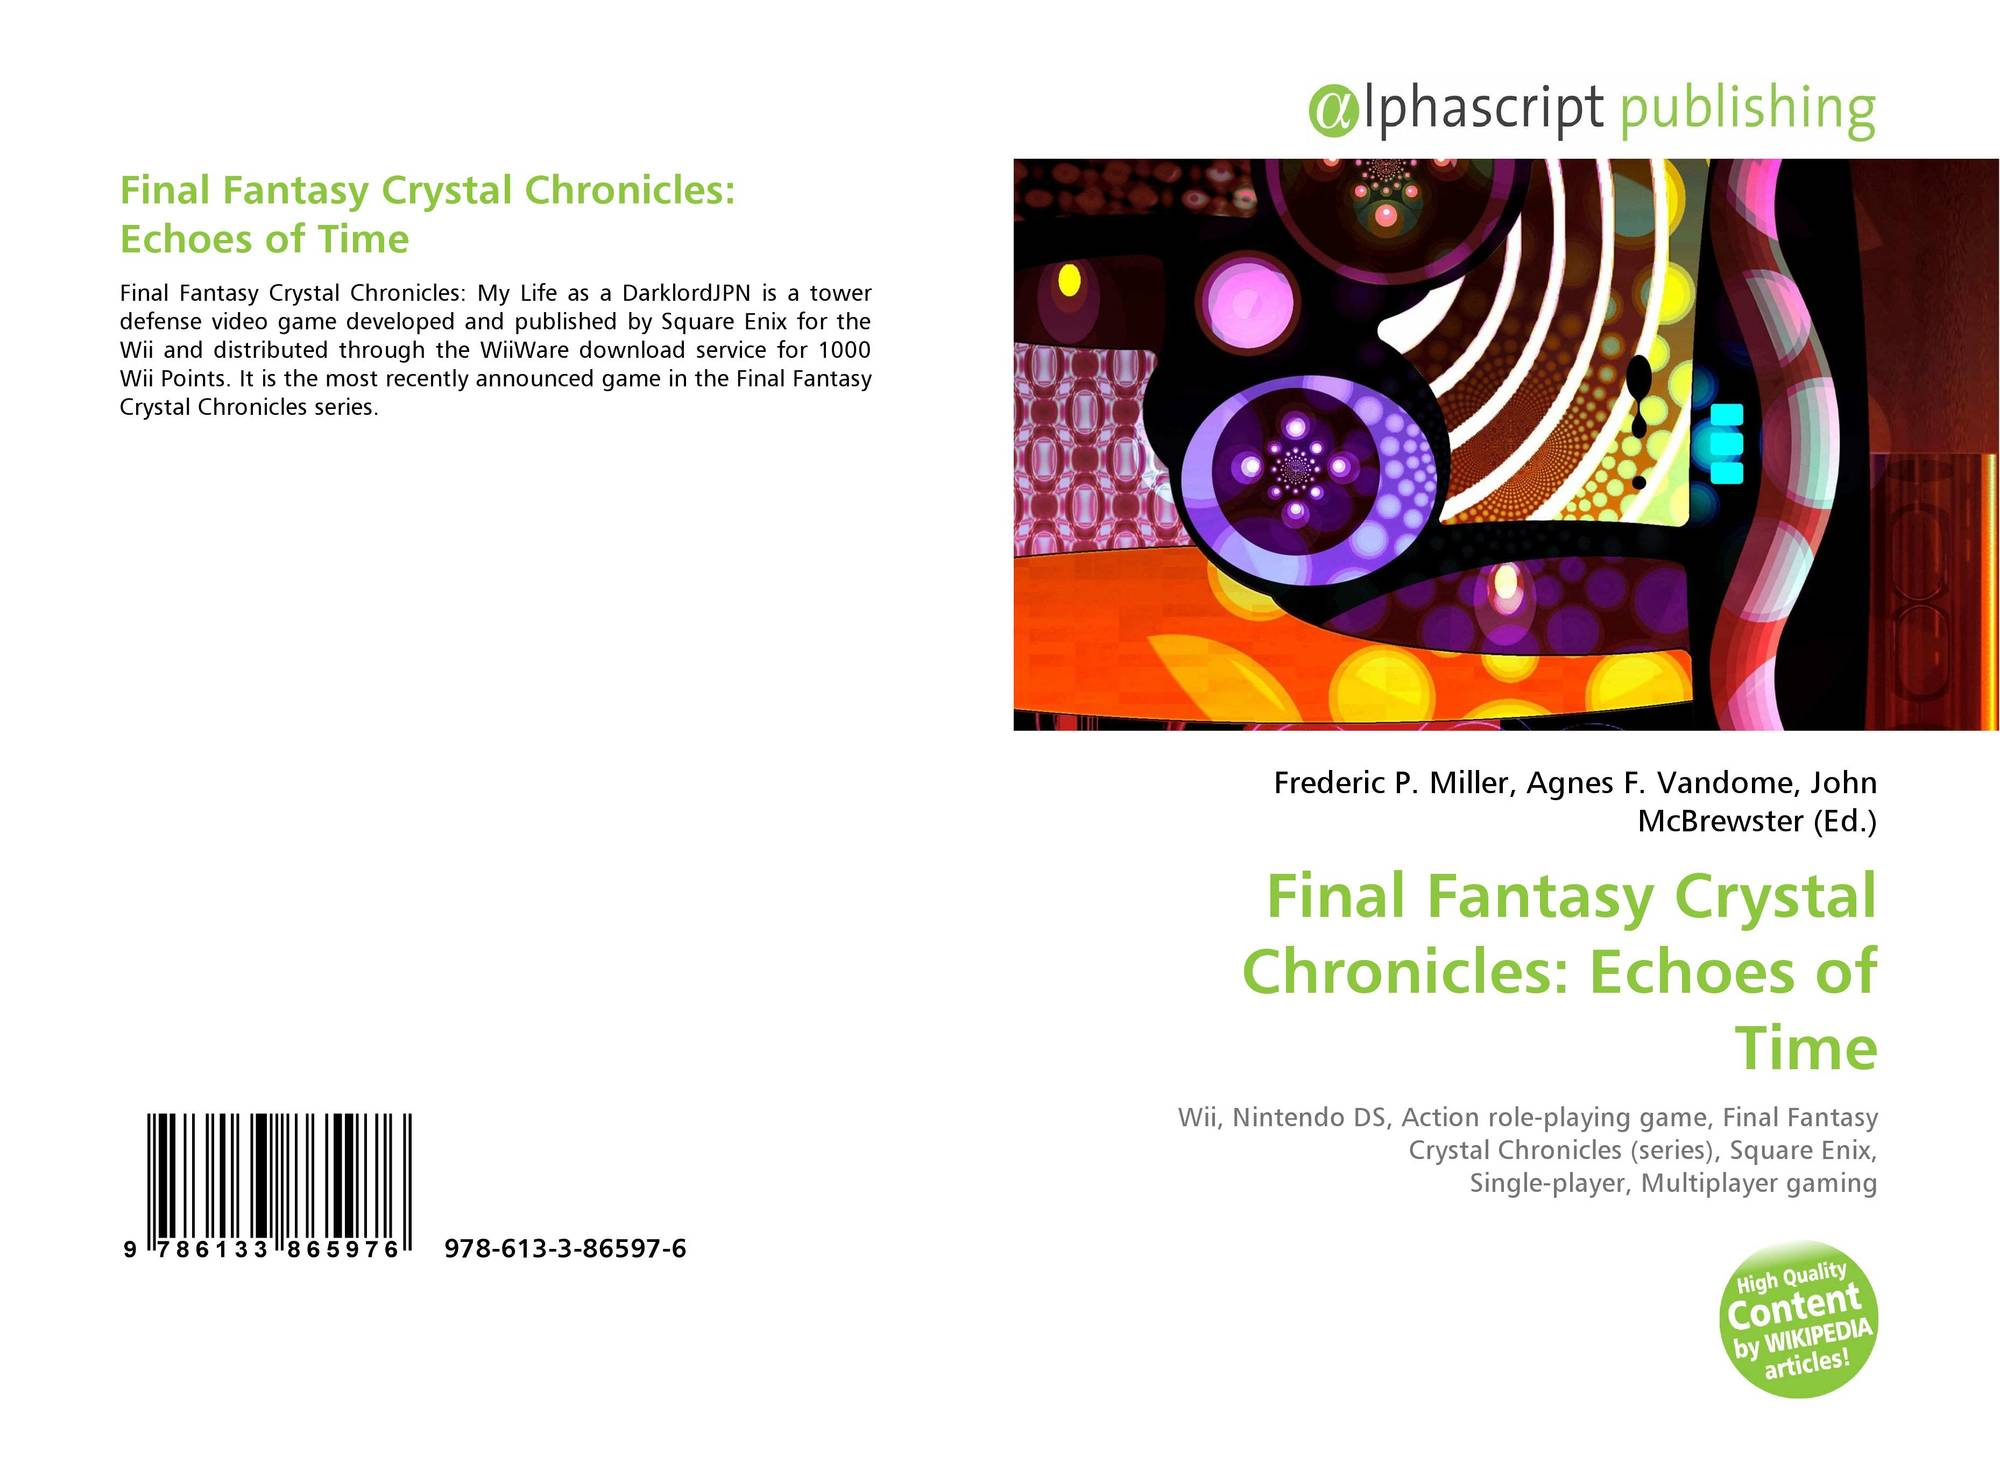 Final Fantasy Crystal Chronicles: Echoes of Time, 978-613-3